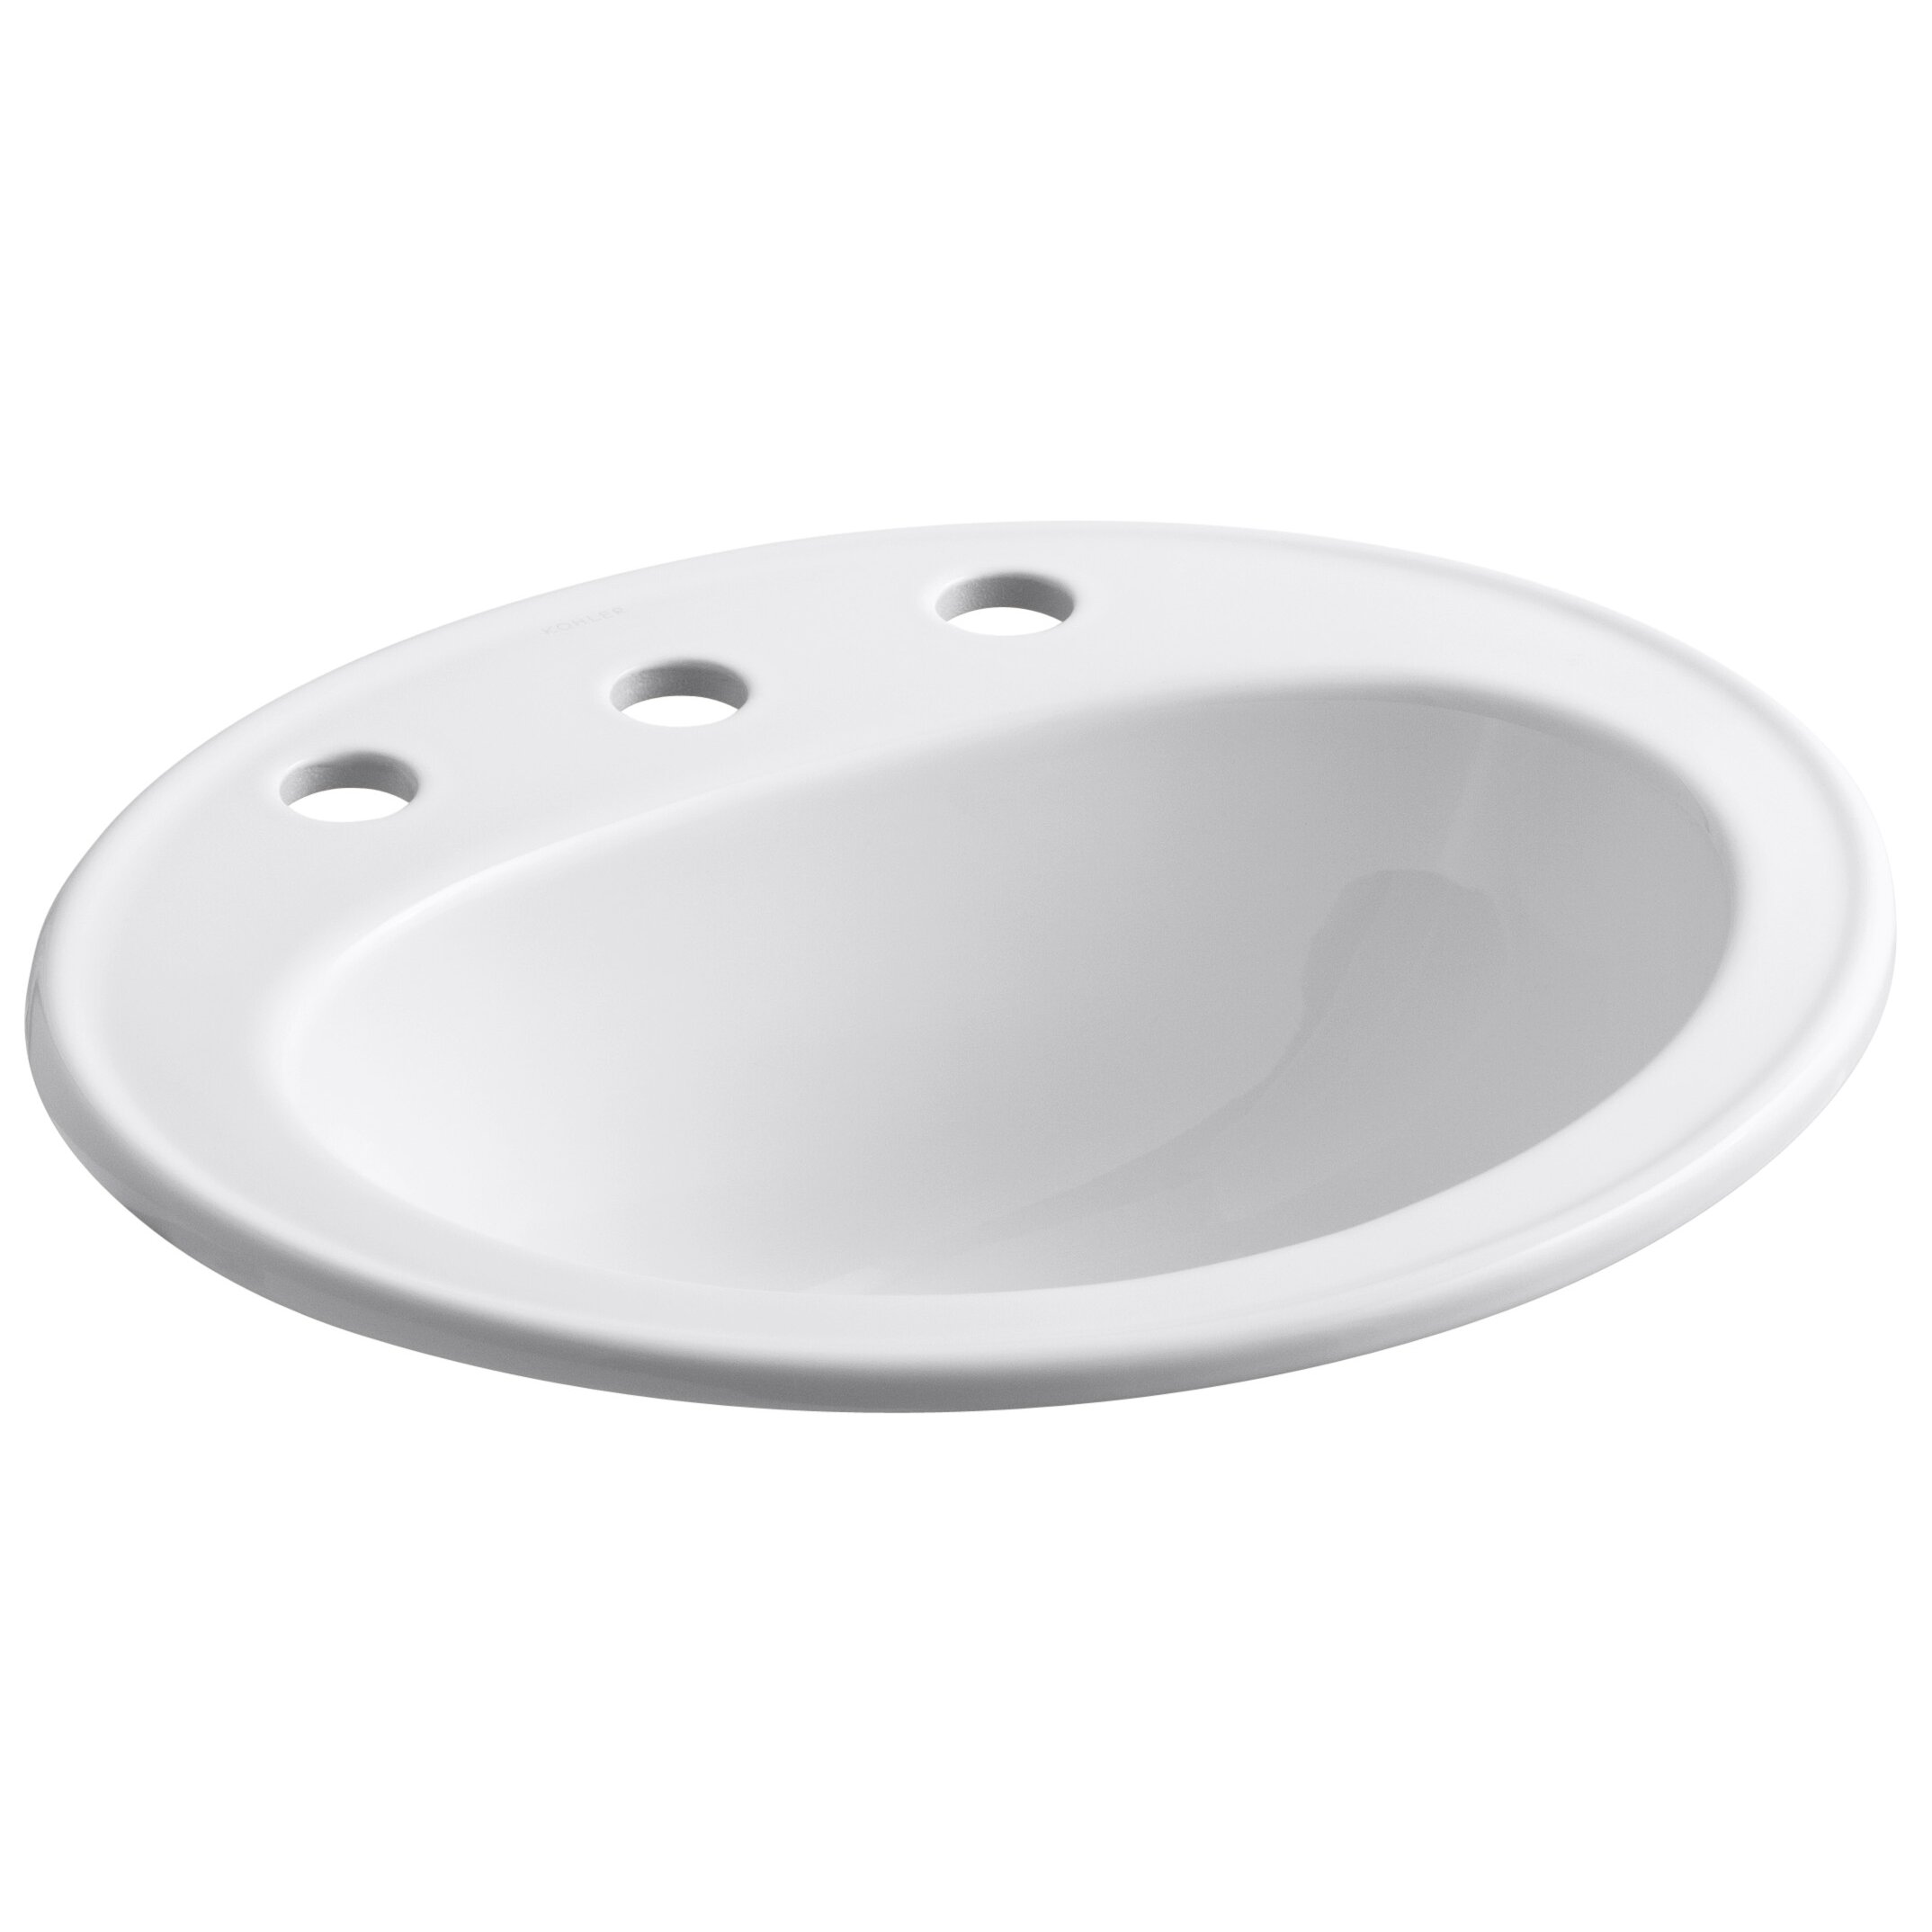 Kohler Pennington Drop-In Bathroom Sink & Reviews Wayfair.ca